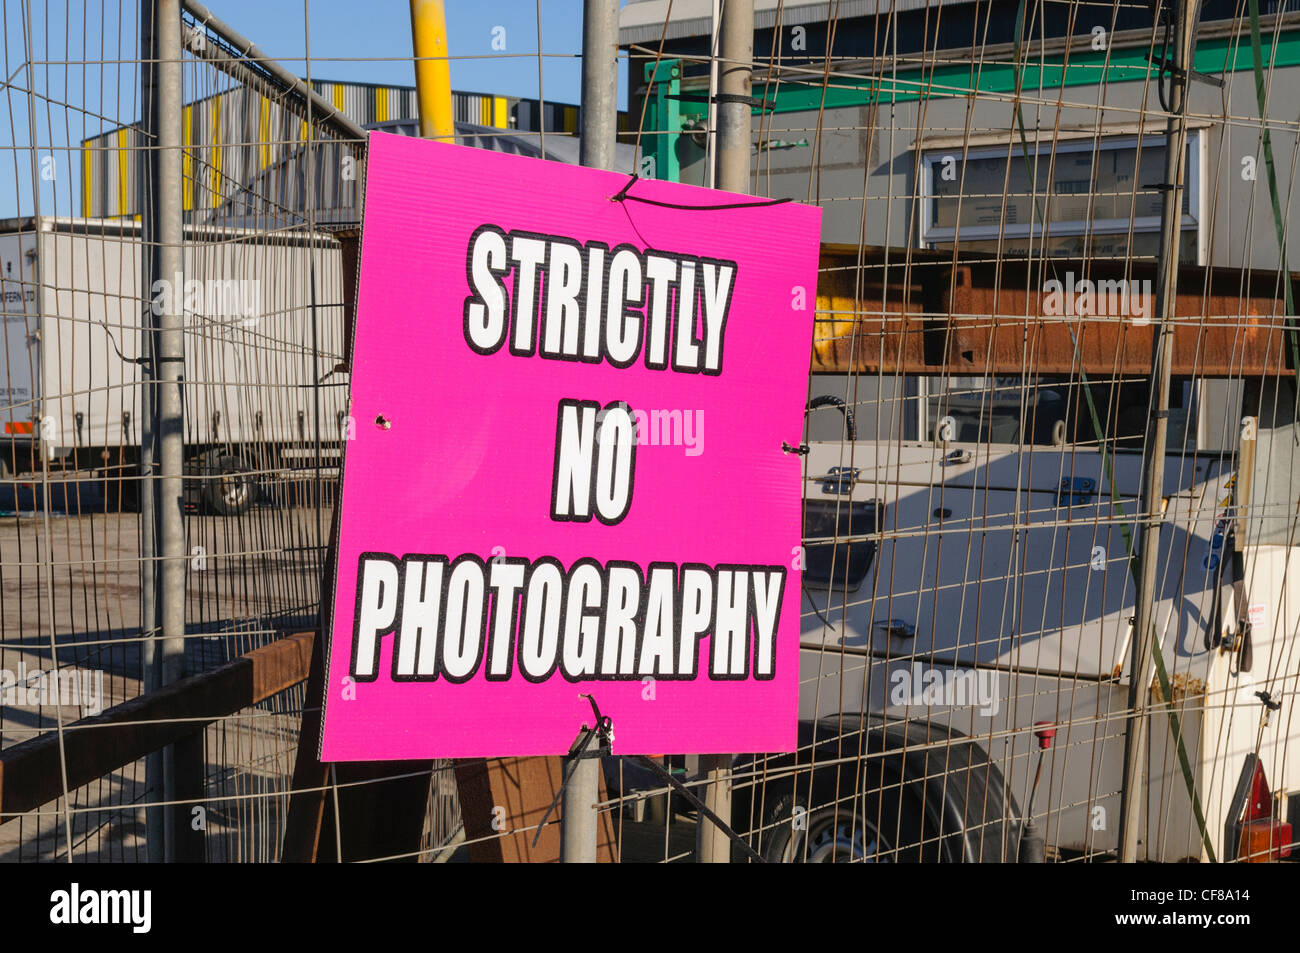 'Strictly no photography' sign at the Game of Thrones film set at the Titanic Studios, Belfast - Stock Image